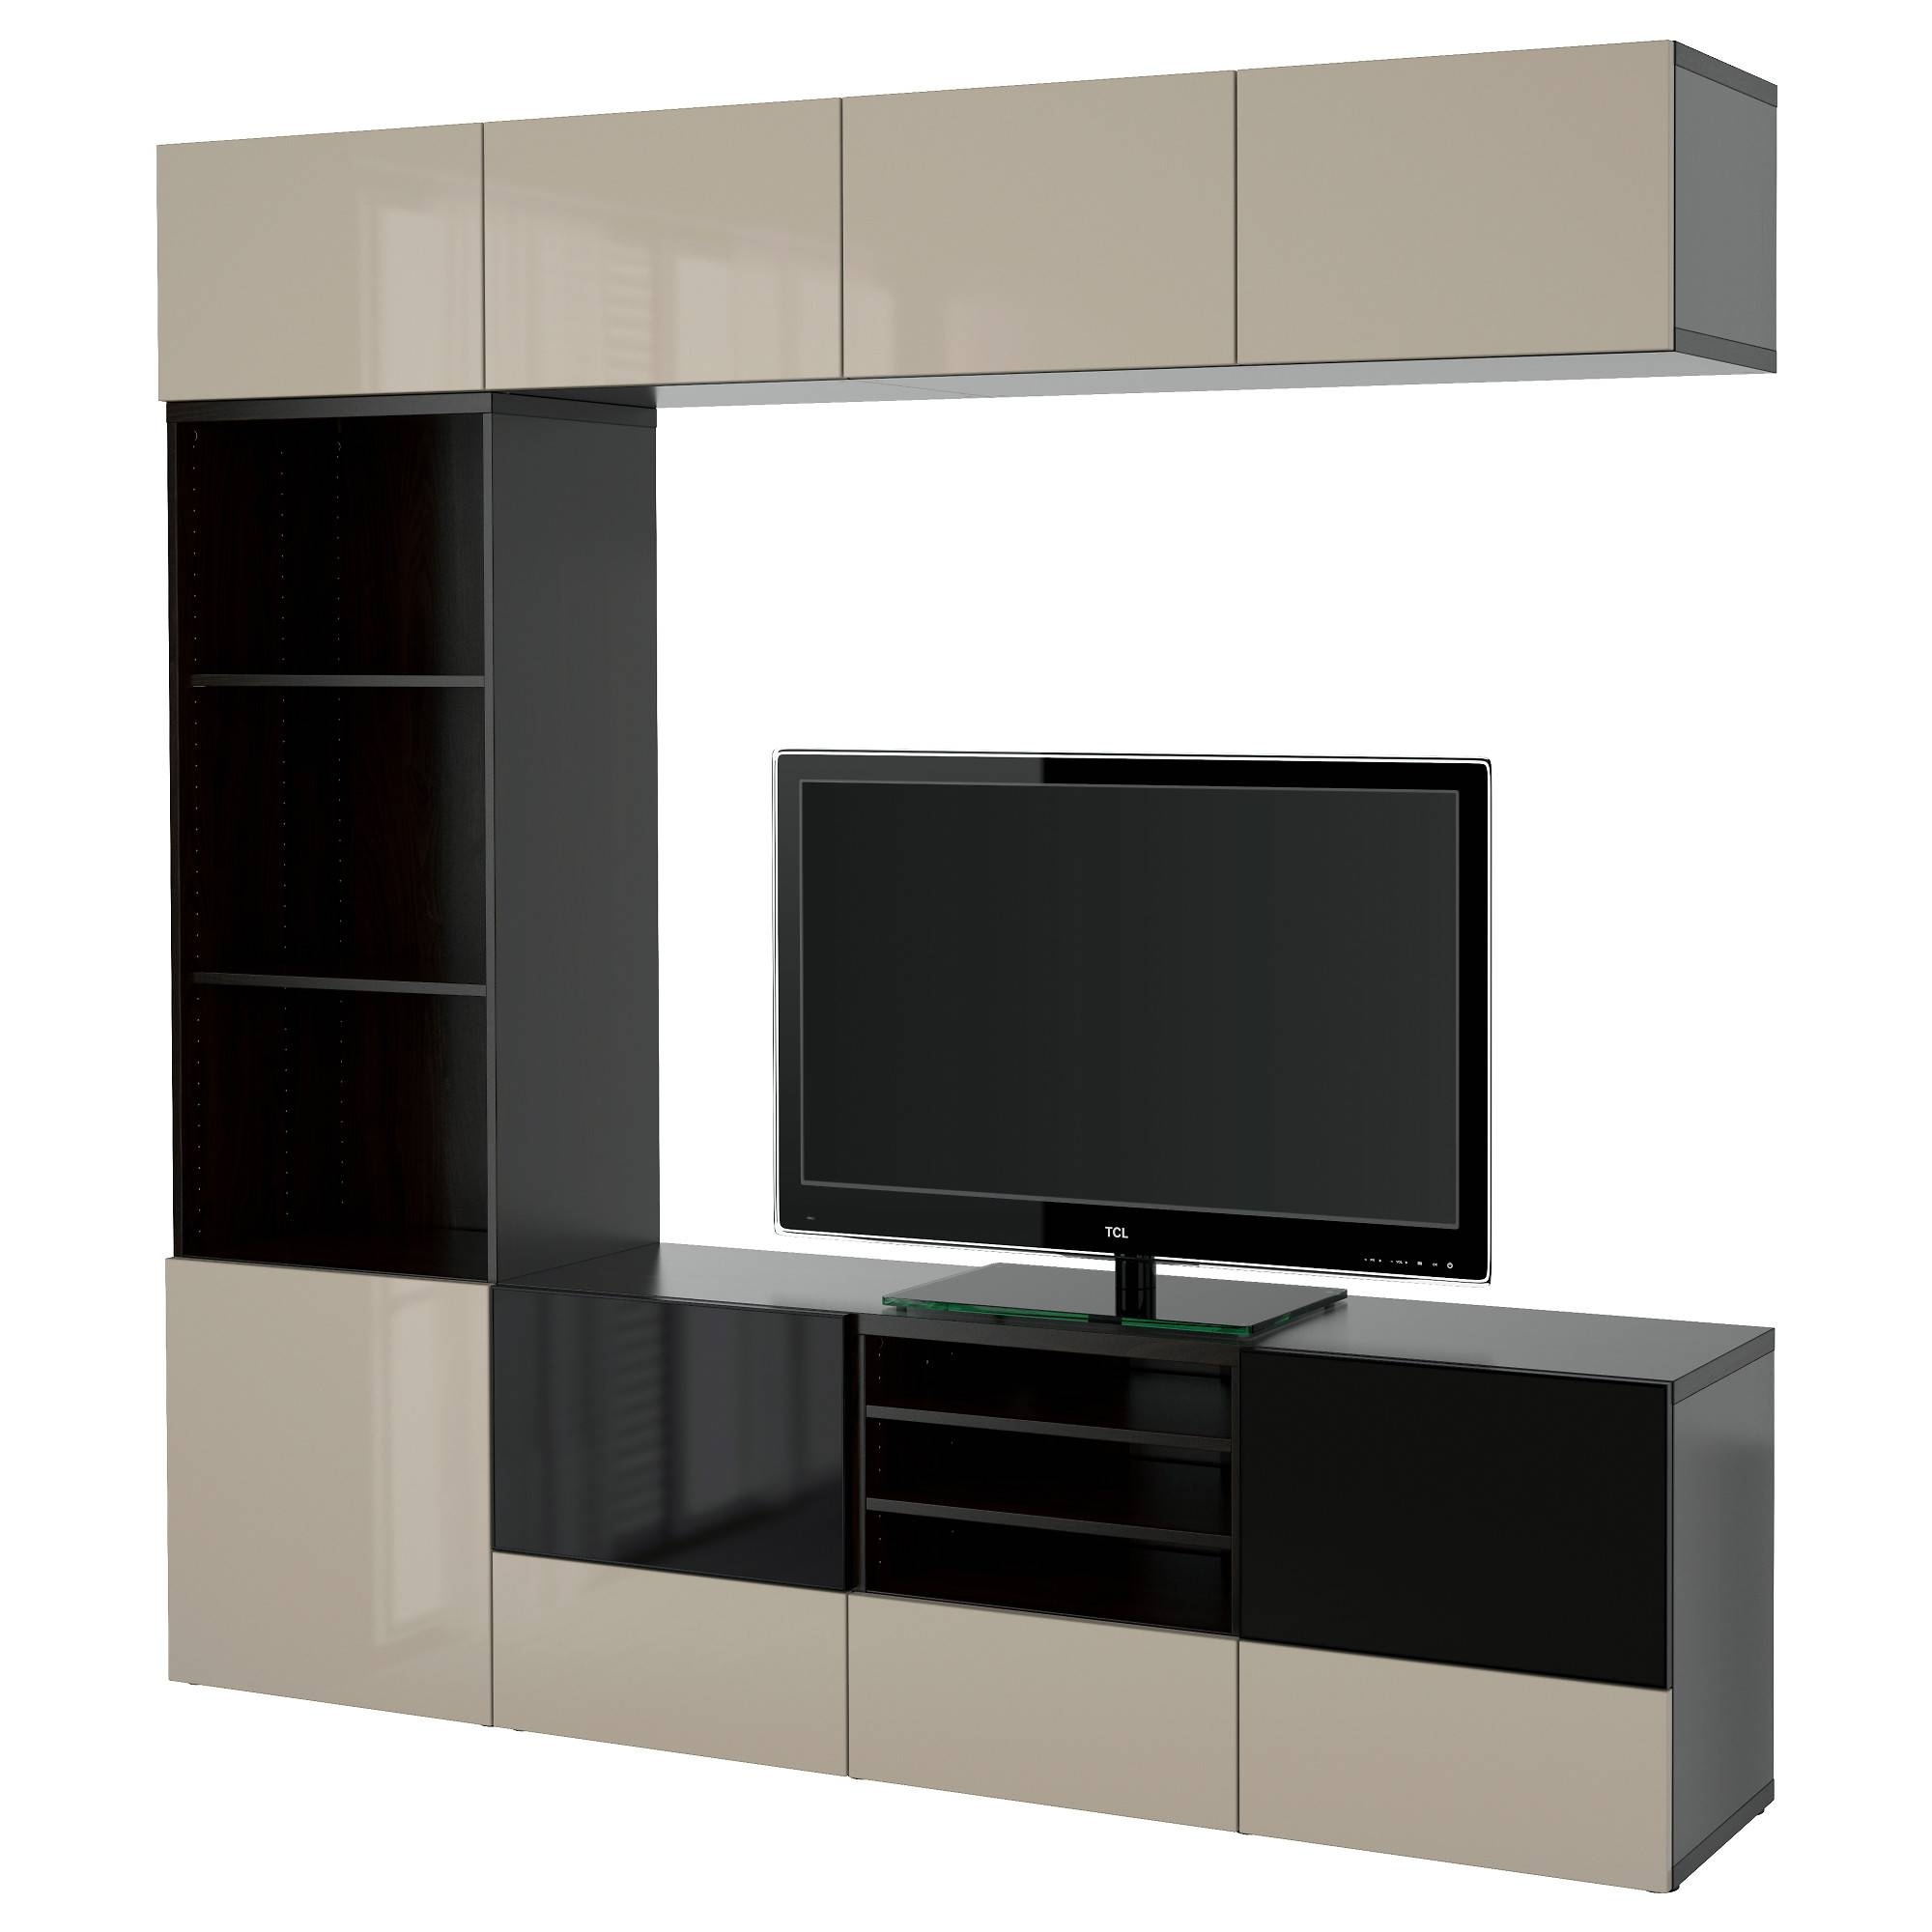 Bestå Tv Storage Combination/glass Doors Black Brown/selsviken Regarding Smoked Glass Tv Stands (View 8 of 15)